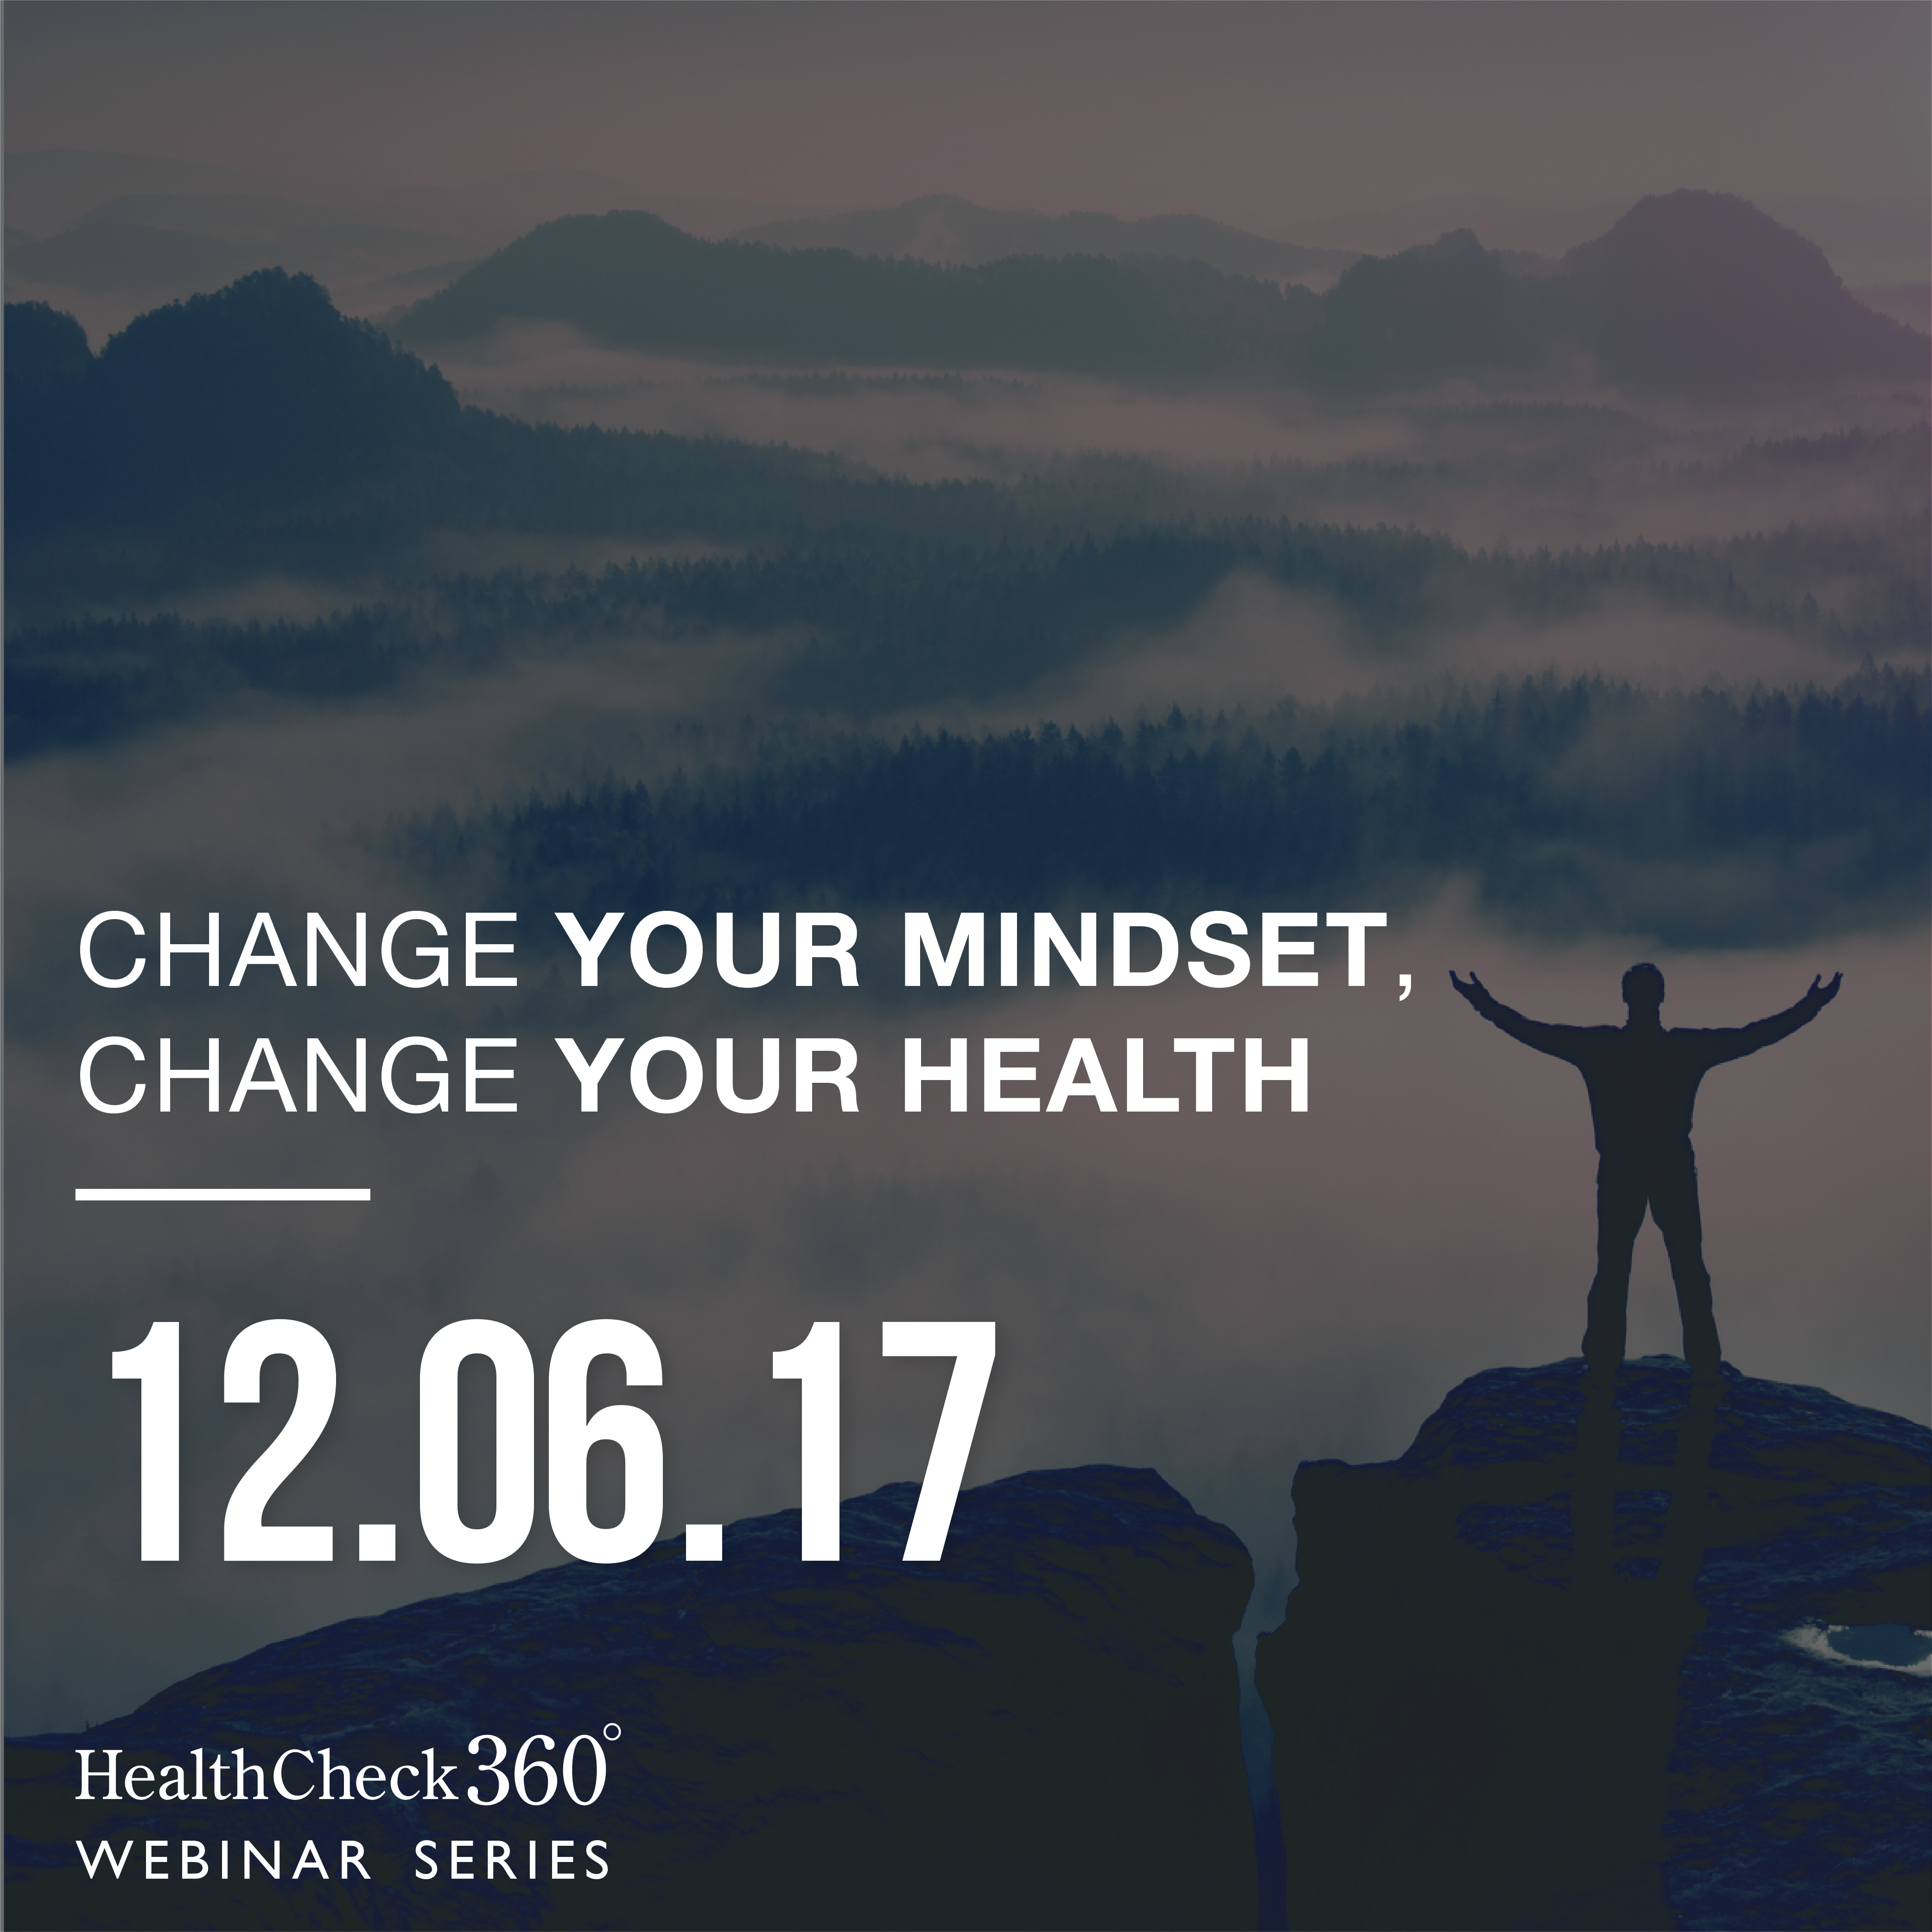 Change your Mindset, Change your Health